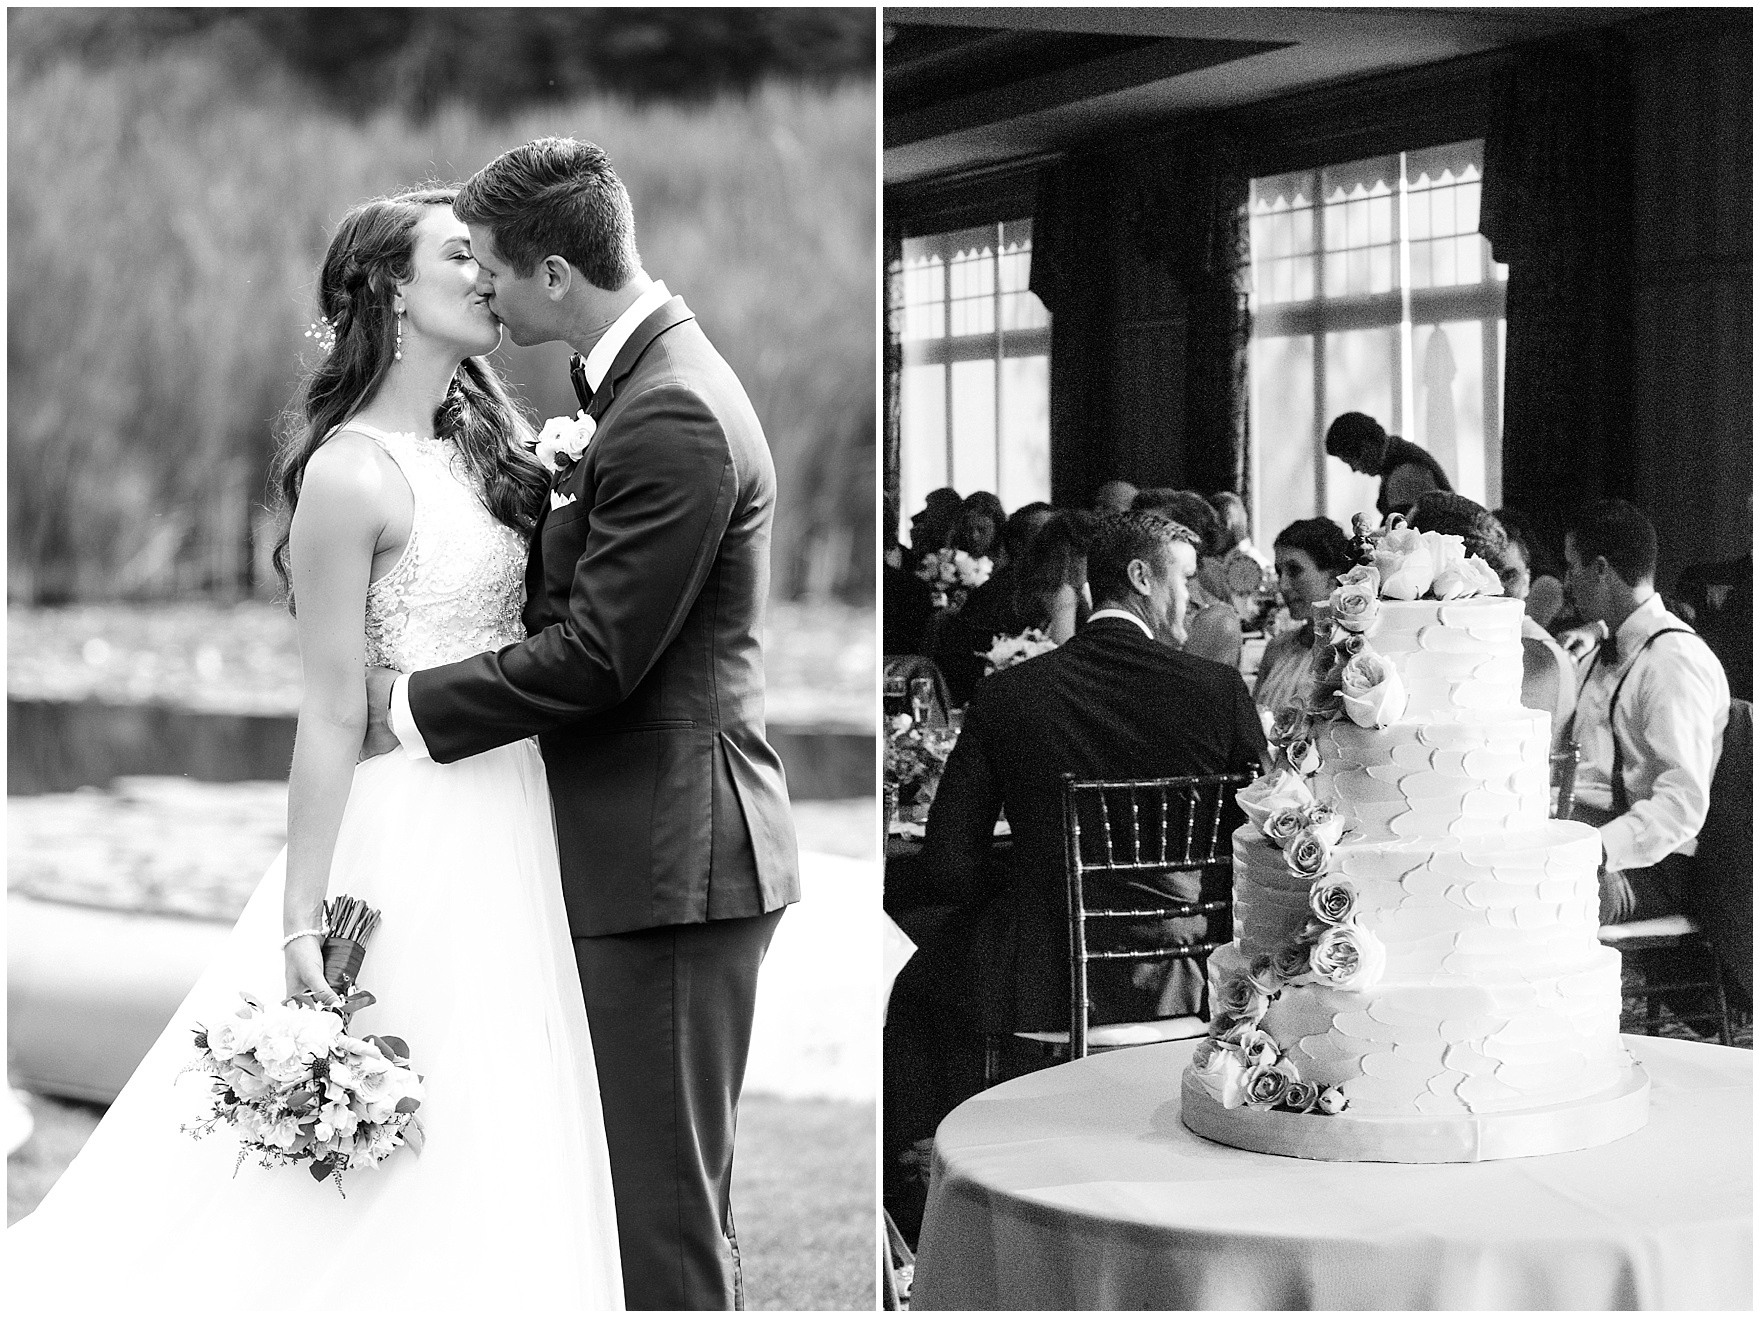 The bride and groom kiss during their Biltmore Country Club Barrington wedding.